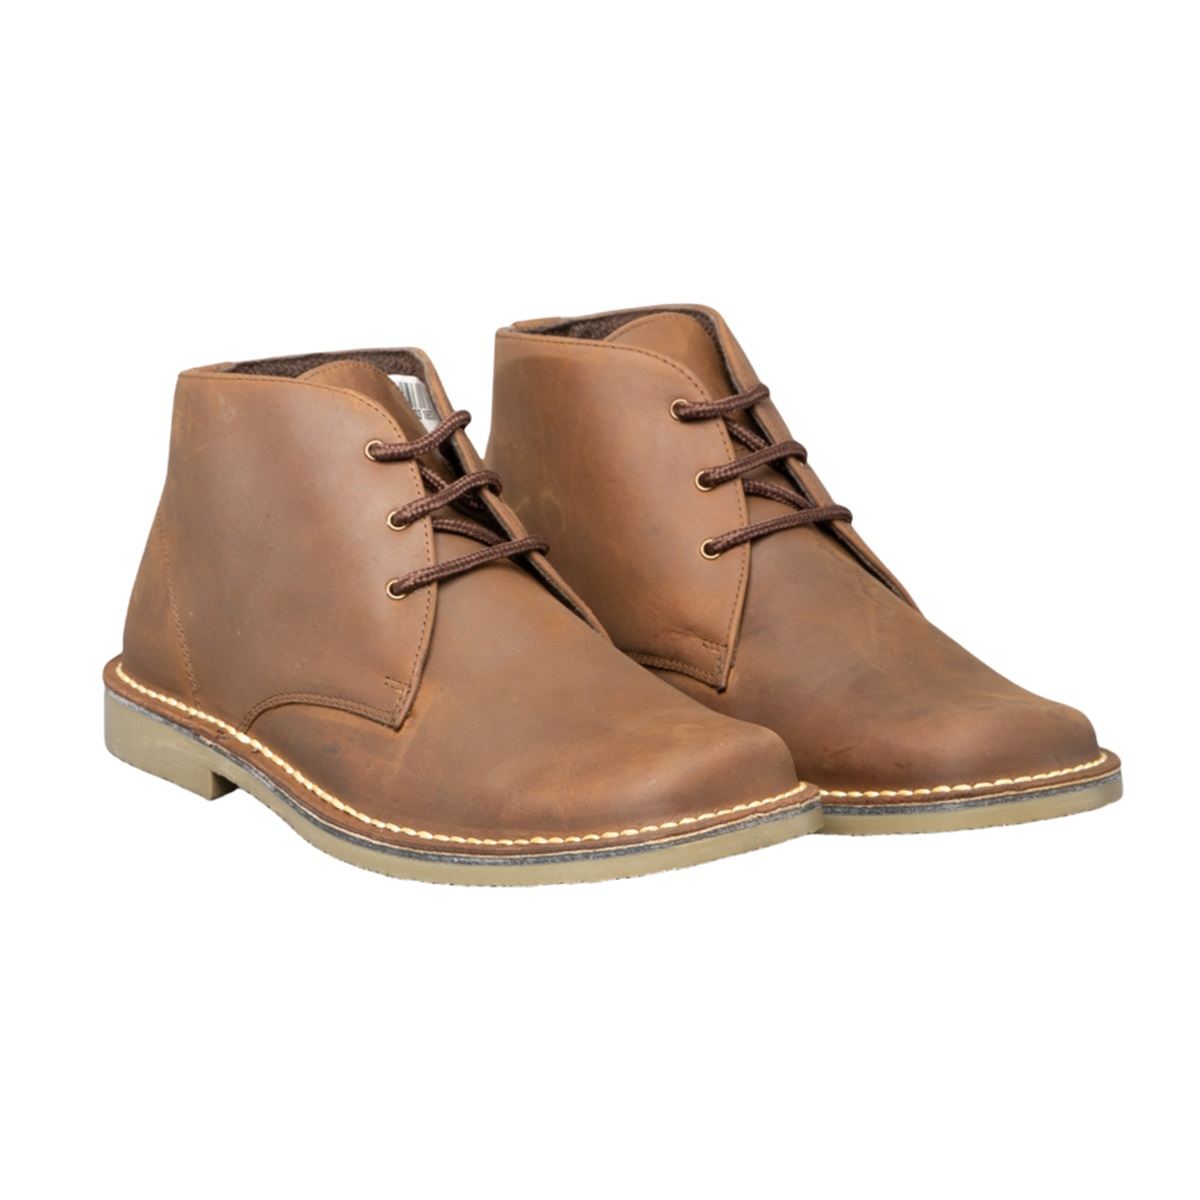 roamers mens waxy leather fulfit casual desert ankle boots shoes sizes 7 15 ebay. Black Bedroom Furniture Sets. Home Design Ideas